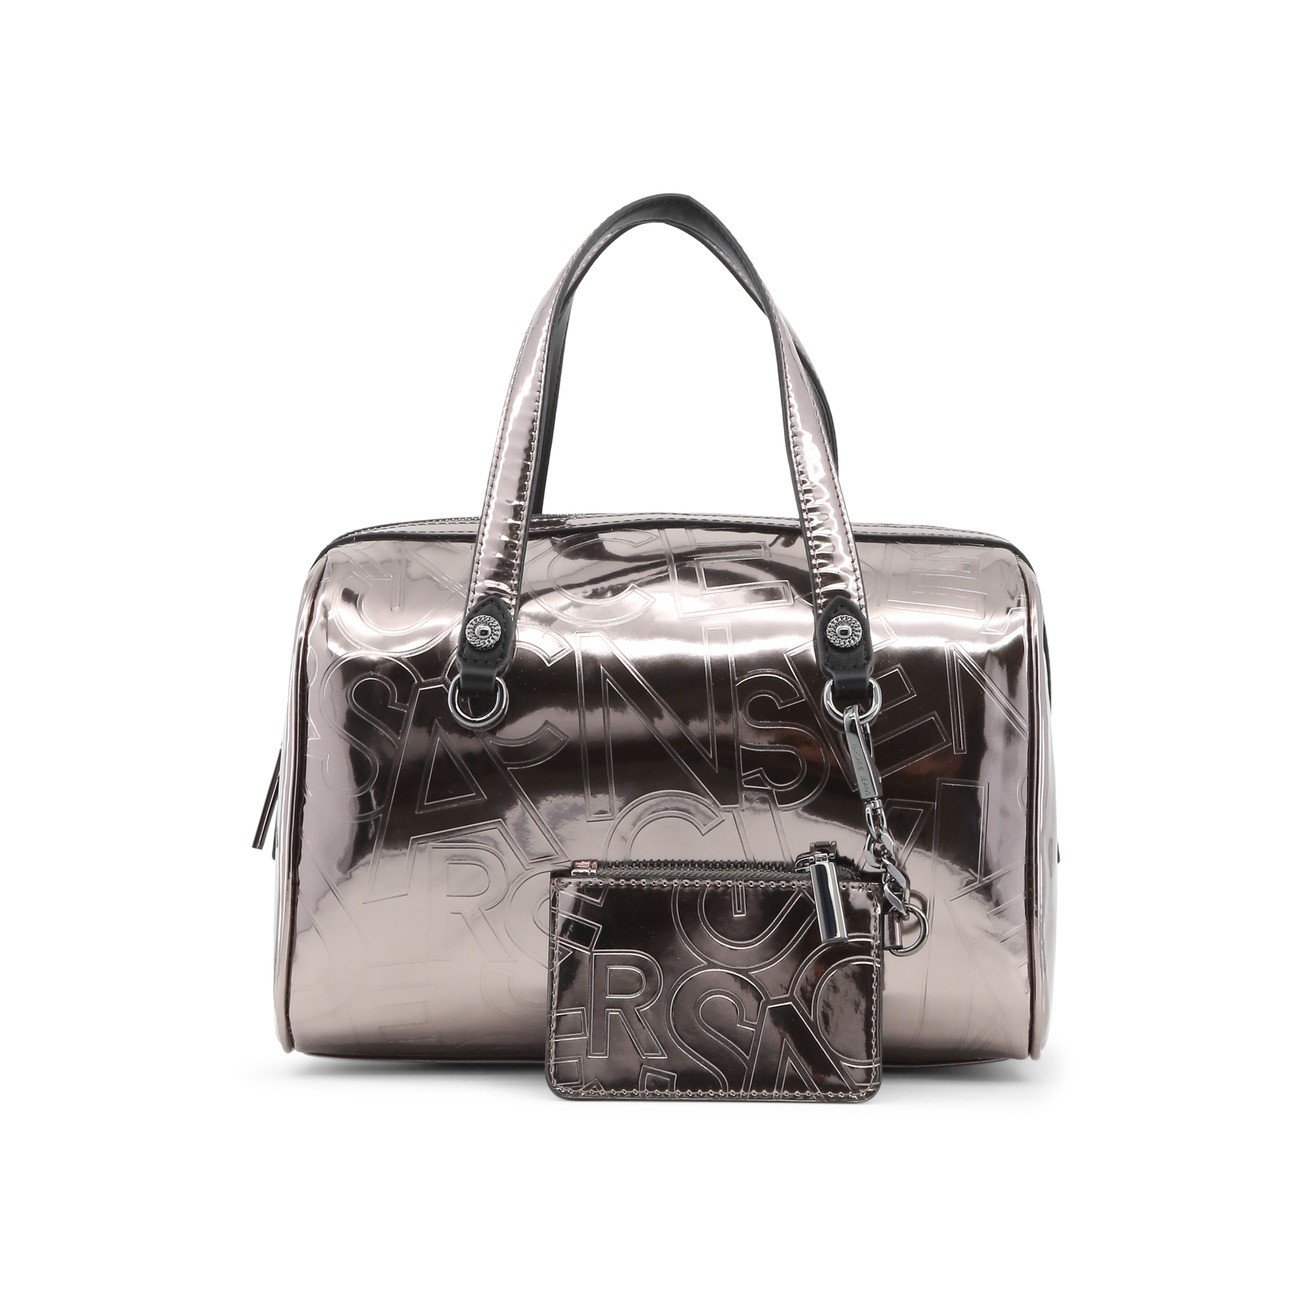 2c671762973d Versace Jeans Handbag metal  Amazon.co.uk  Shoes   Bags